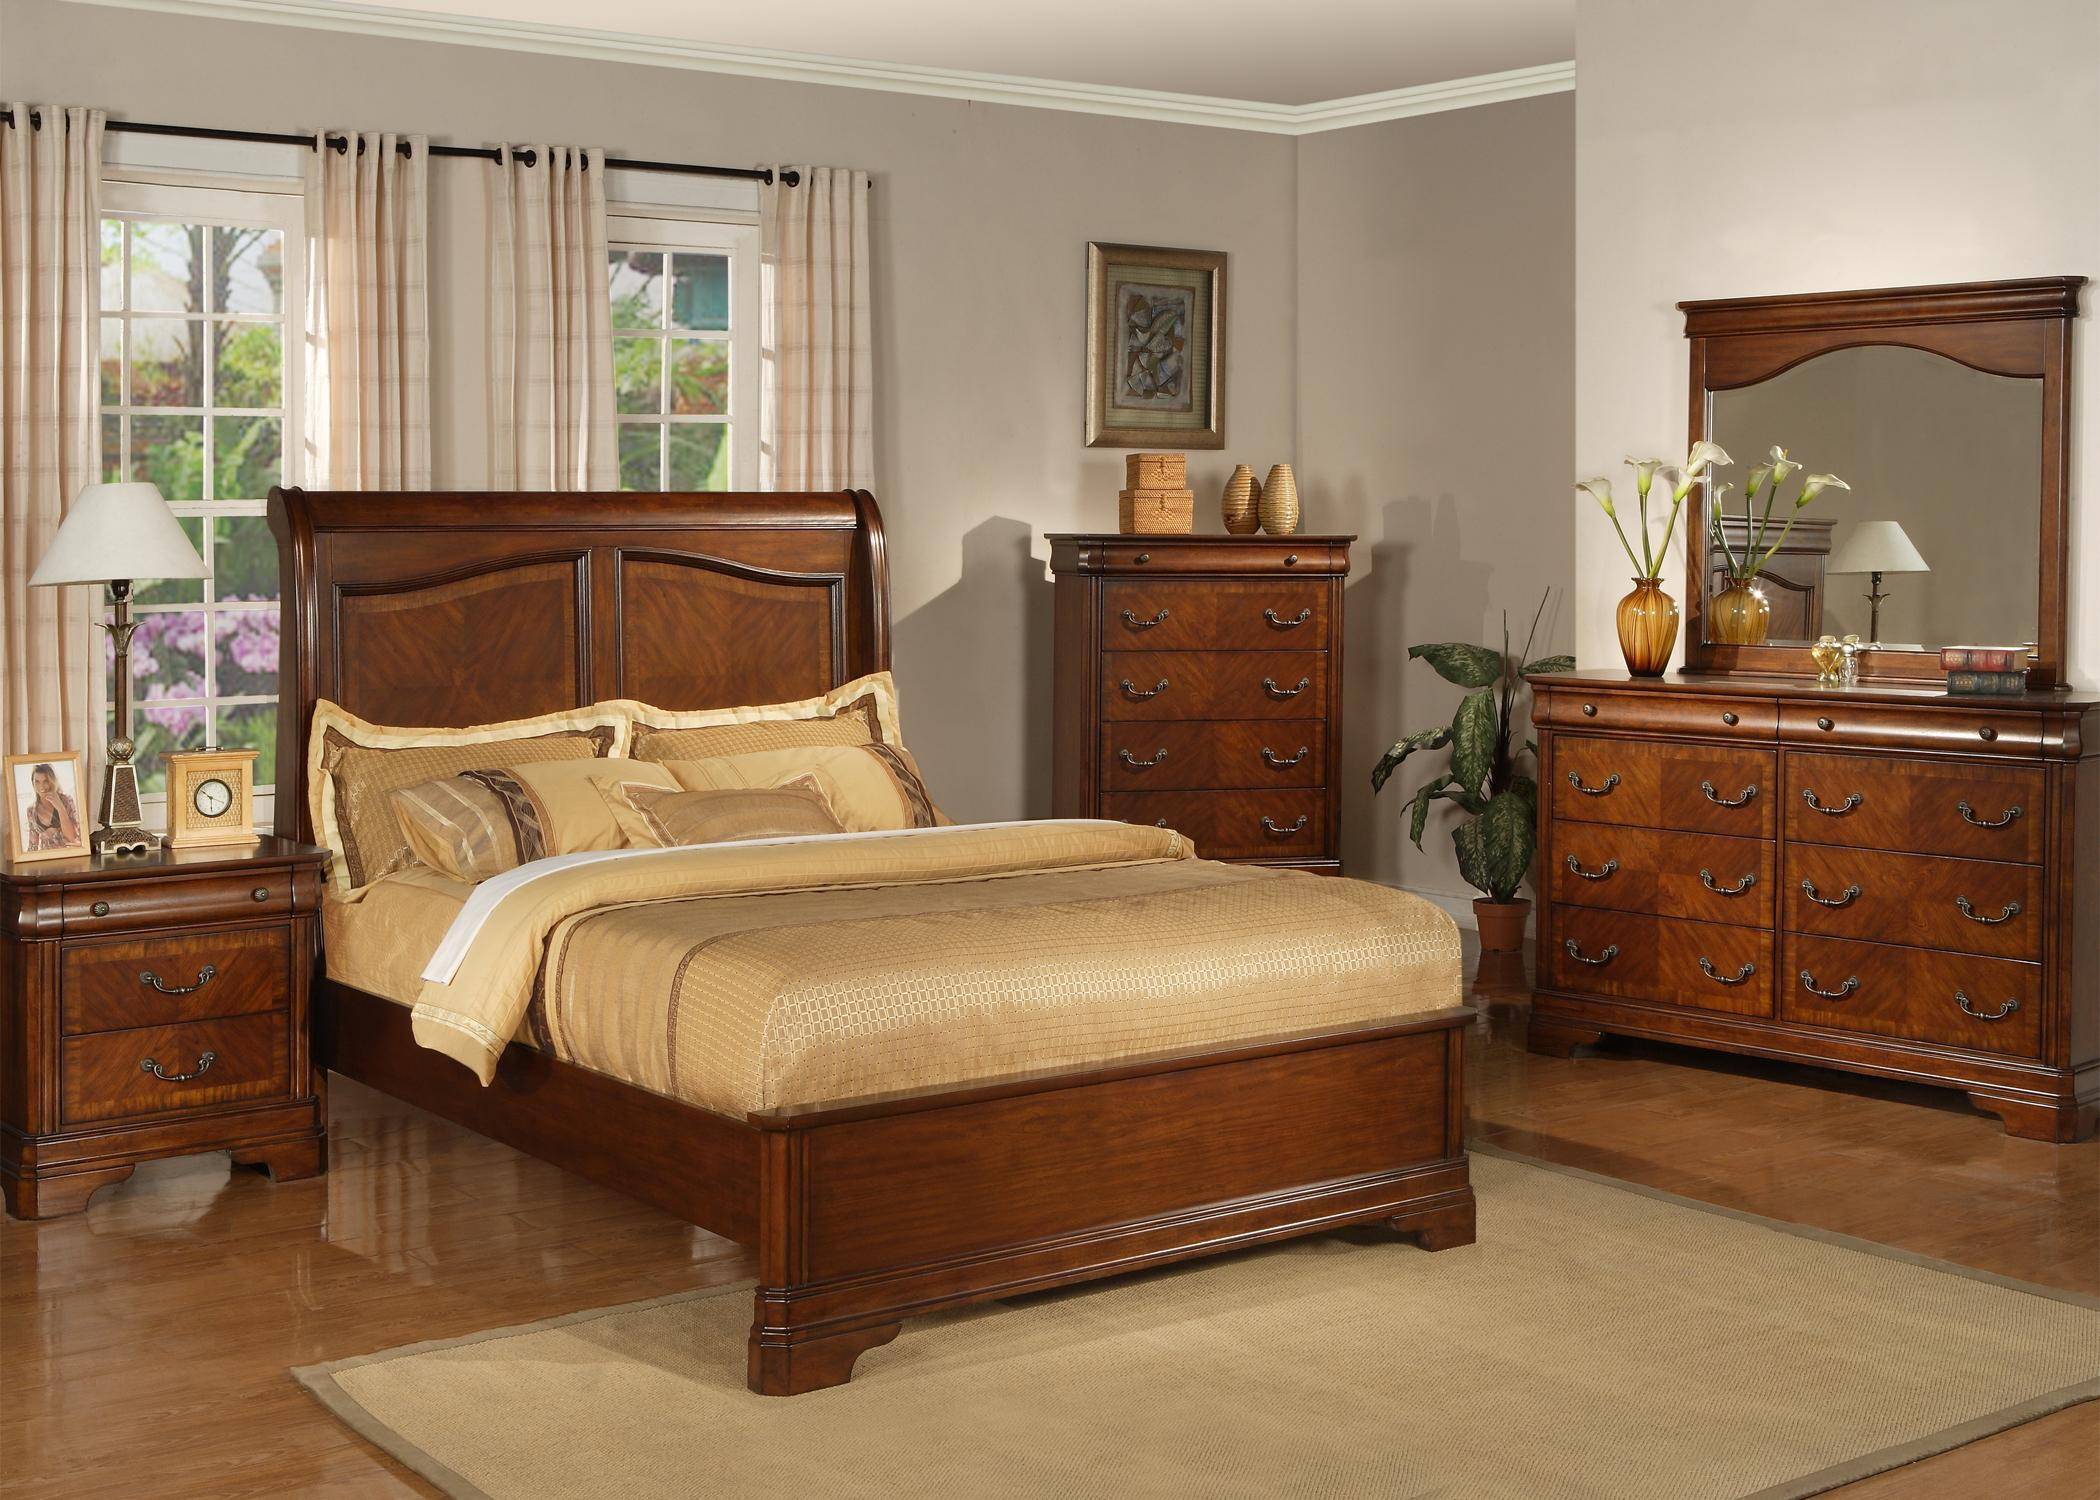 Alexandria King Sleigh Bed With Low Profile Footboard By Liberty Furniture Wolf Furniture